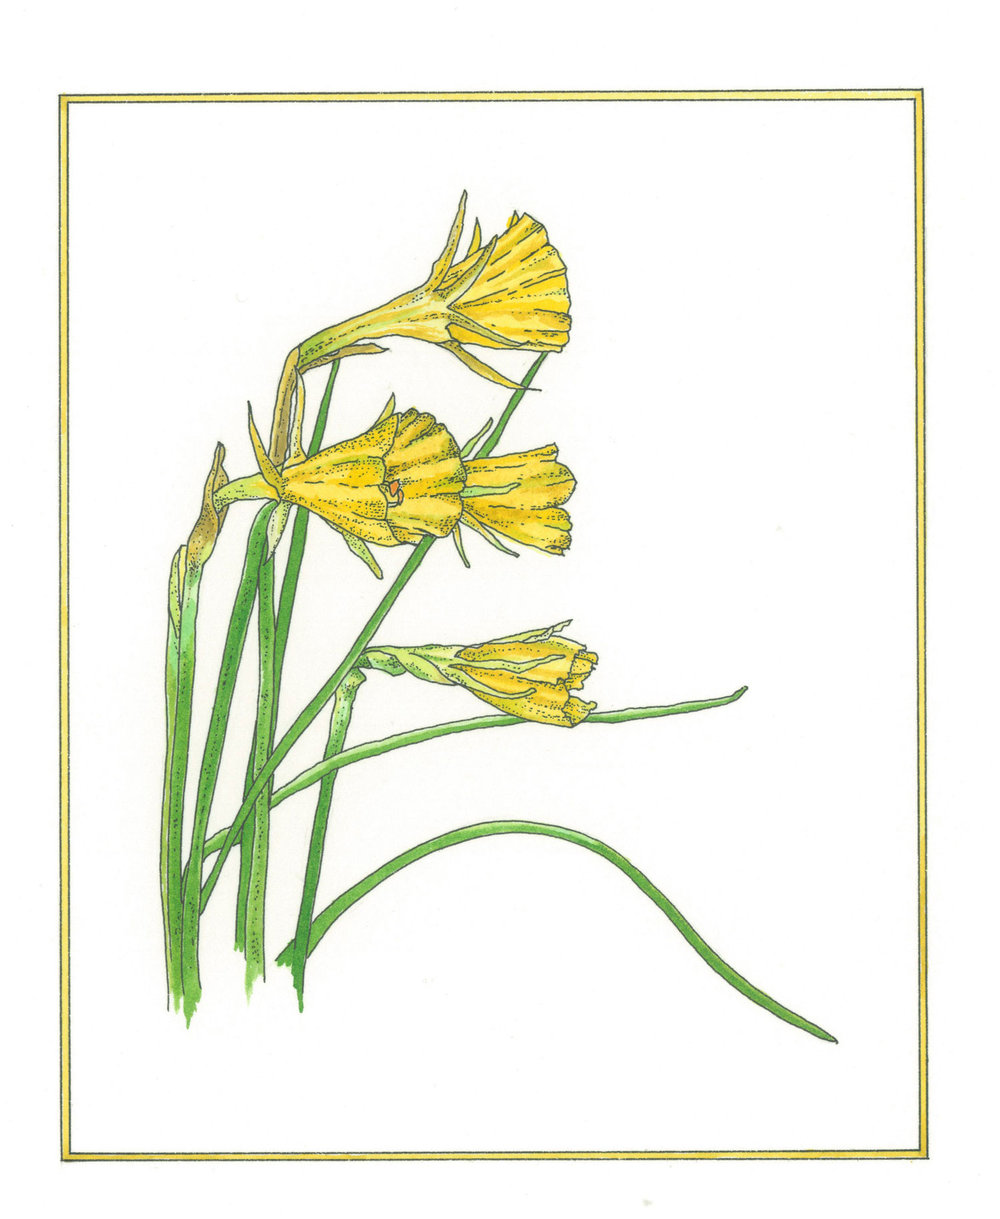 Petticoat Daffodils Available as a giclee print